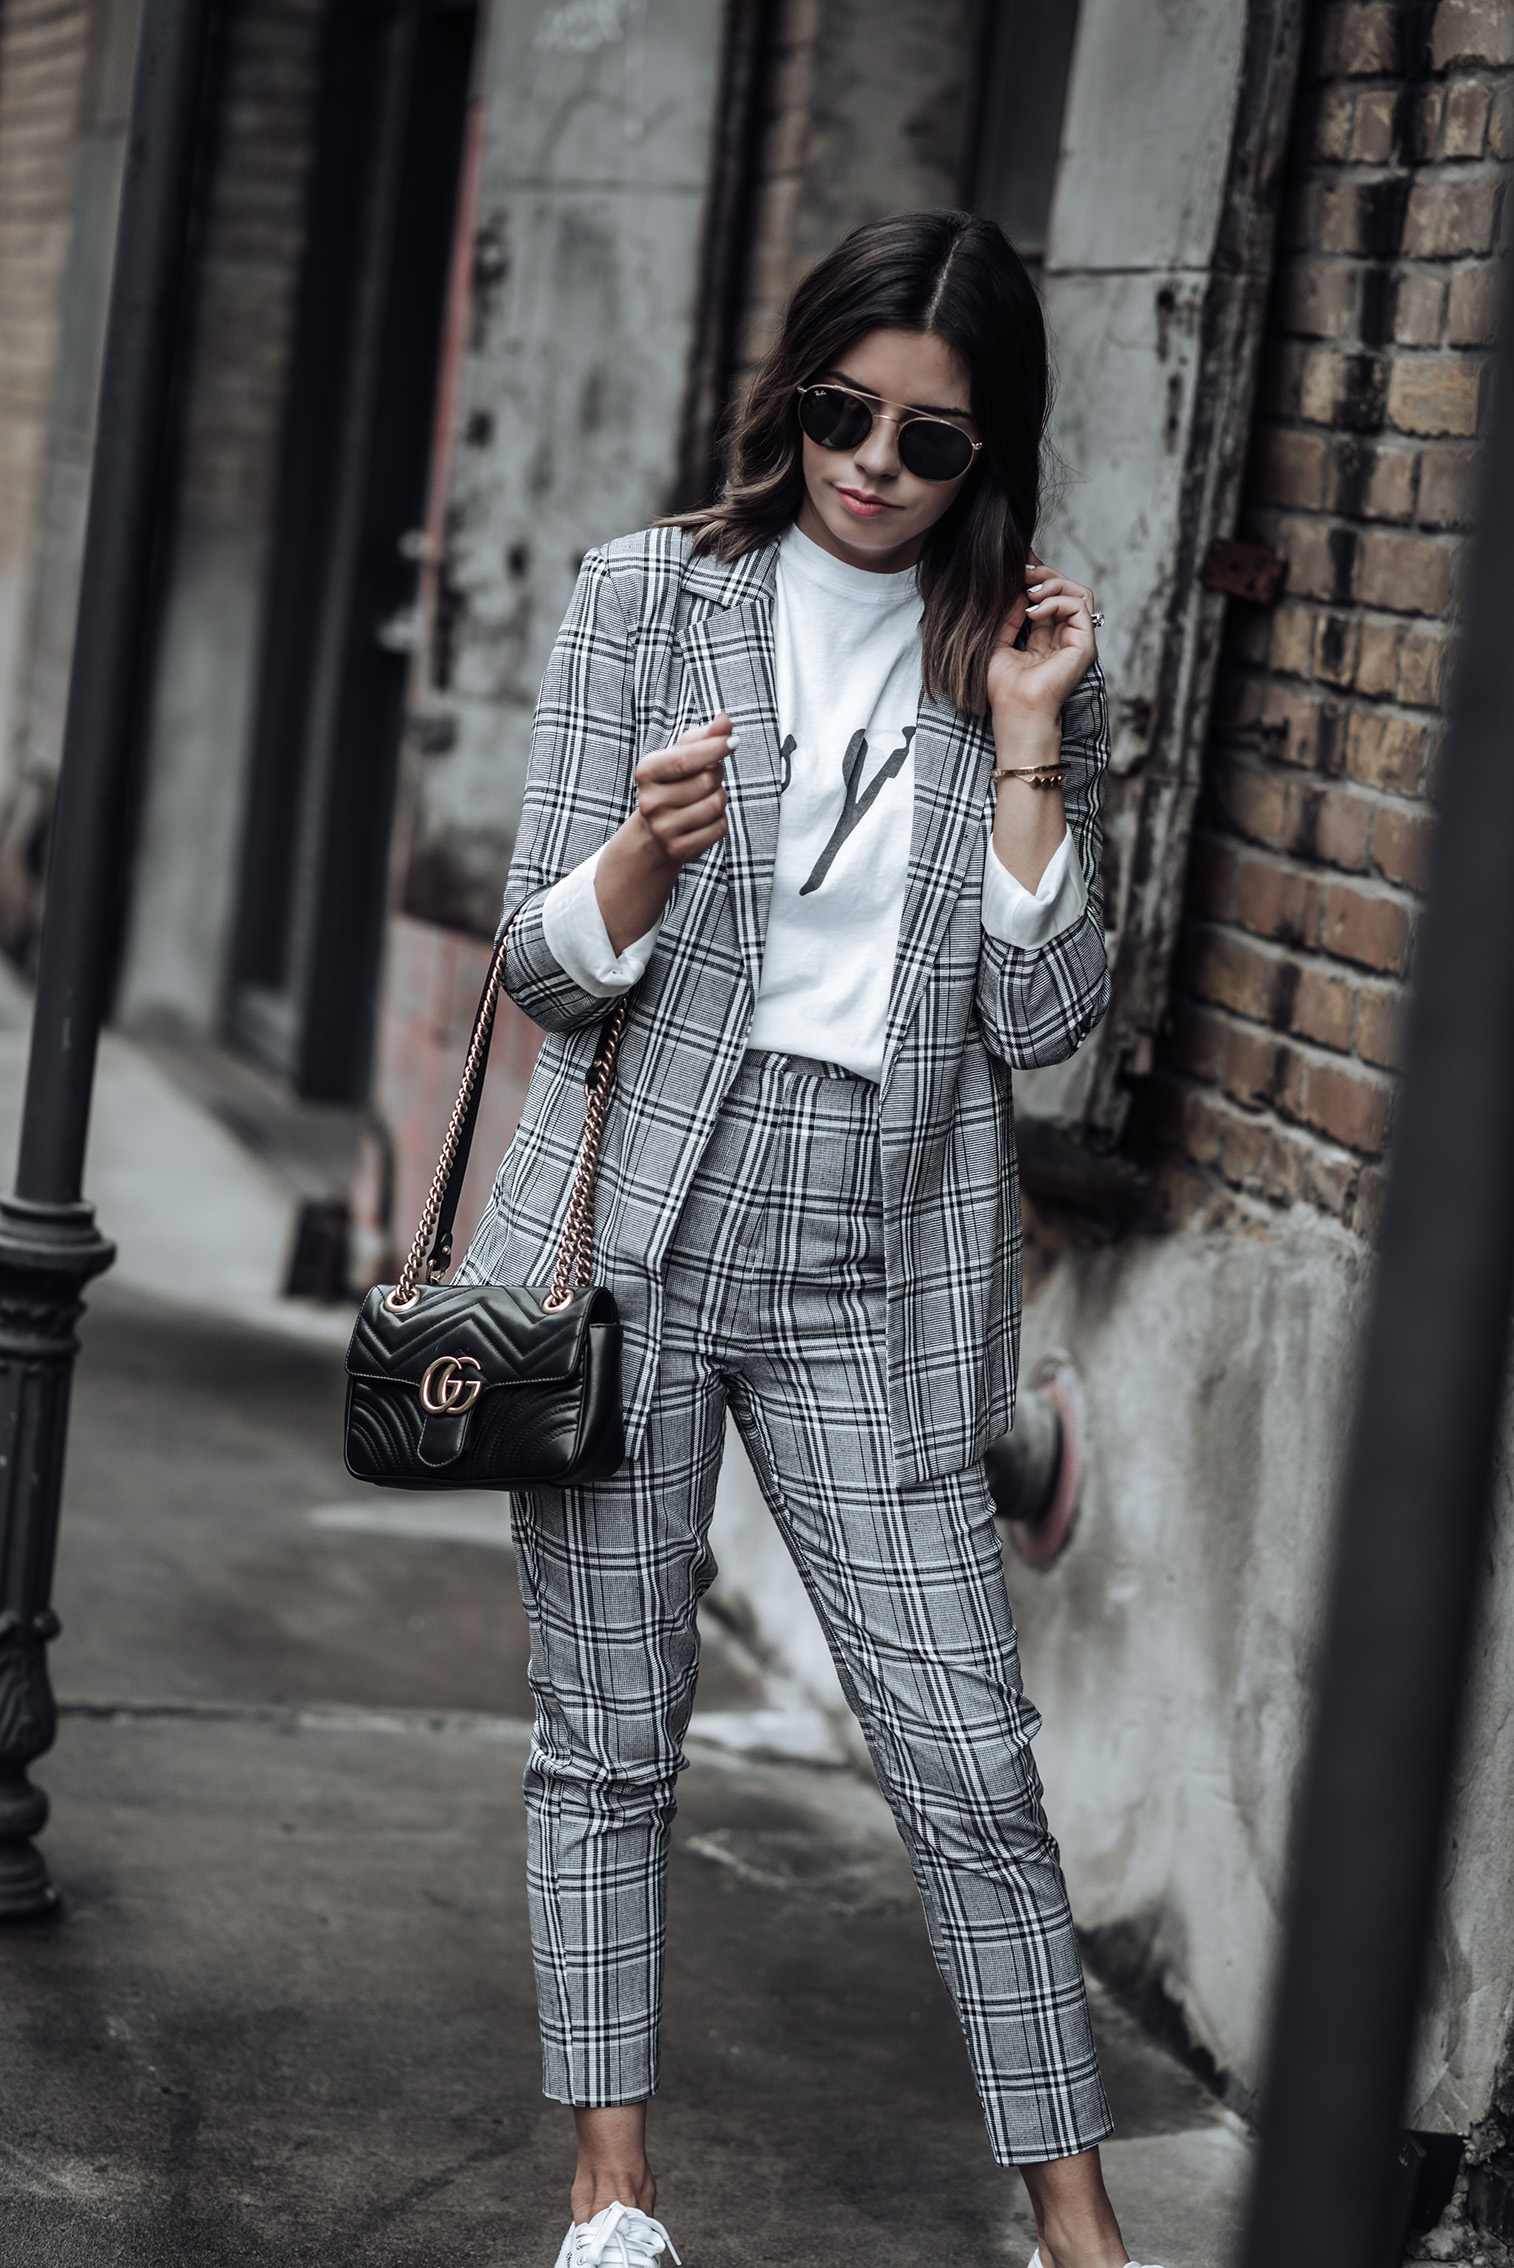 Checked Longline Blazer | Grey Check print | Checked Print Pants | Superga Platforms | Les Girls Tee | Mini GG Marmont #streetstyle2018 #womenssuit #graphictee #minimalistblogger #minimal